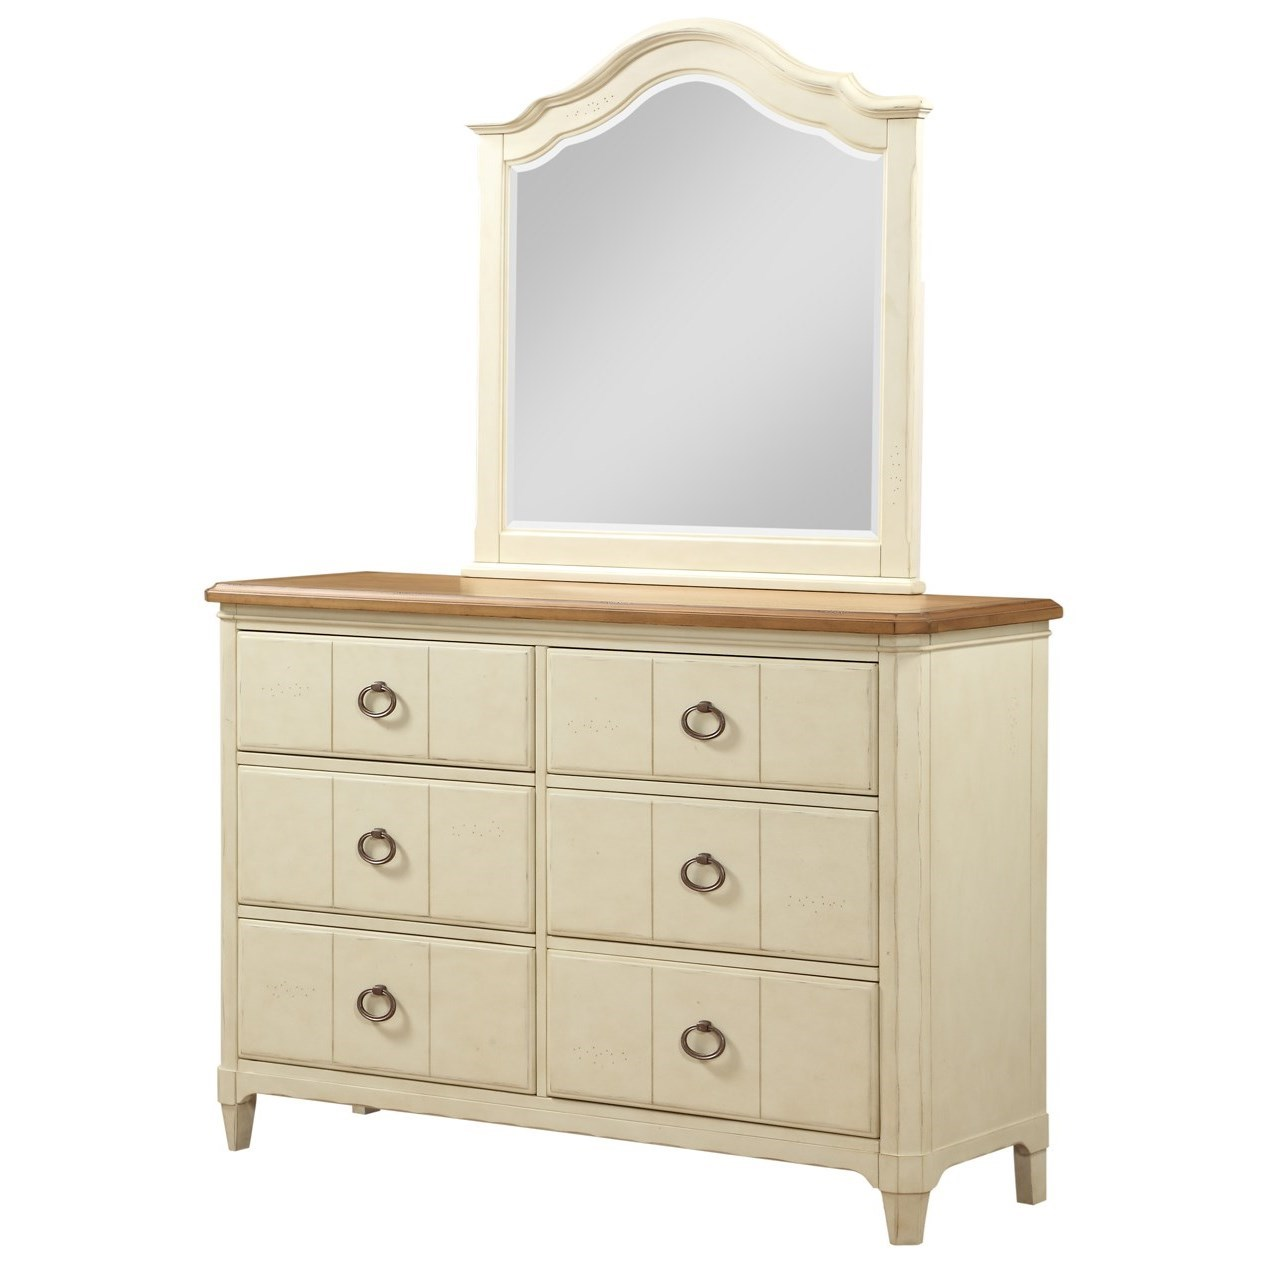 Panama Jack by Palmetto Home Millbrook Dresser and Mirror Set - Item Number: 112-145+045